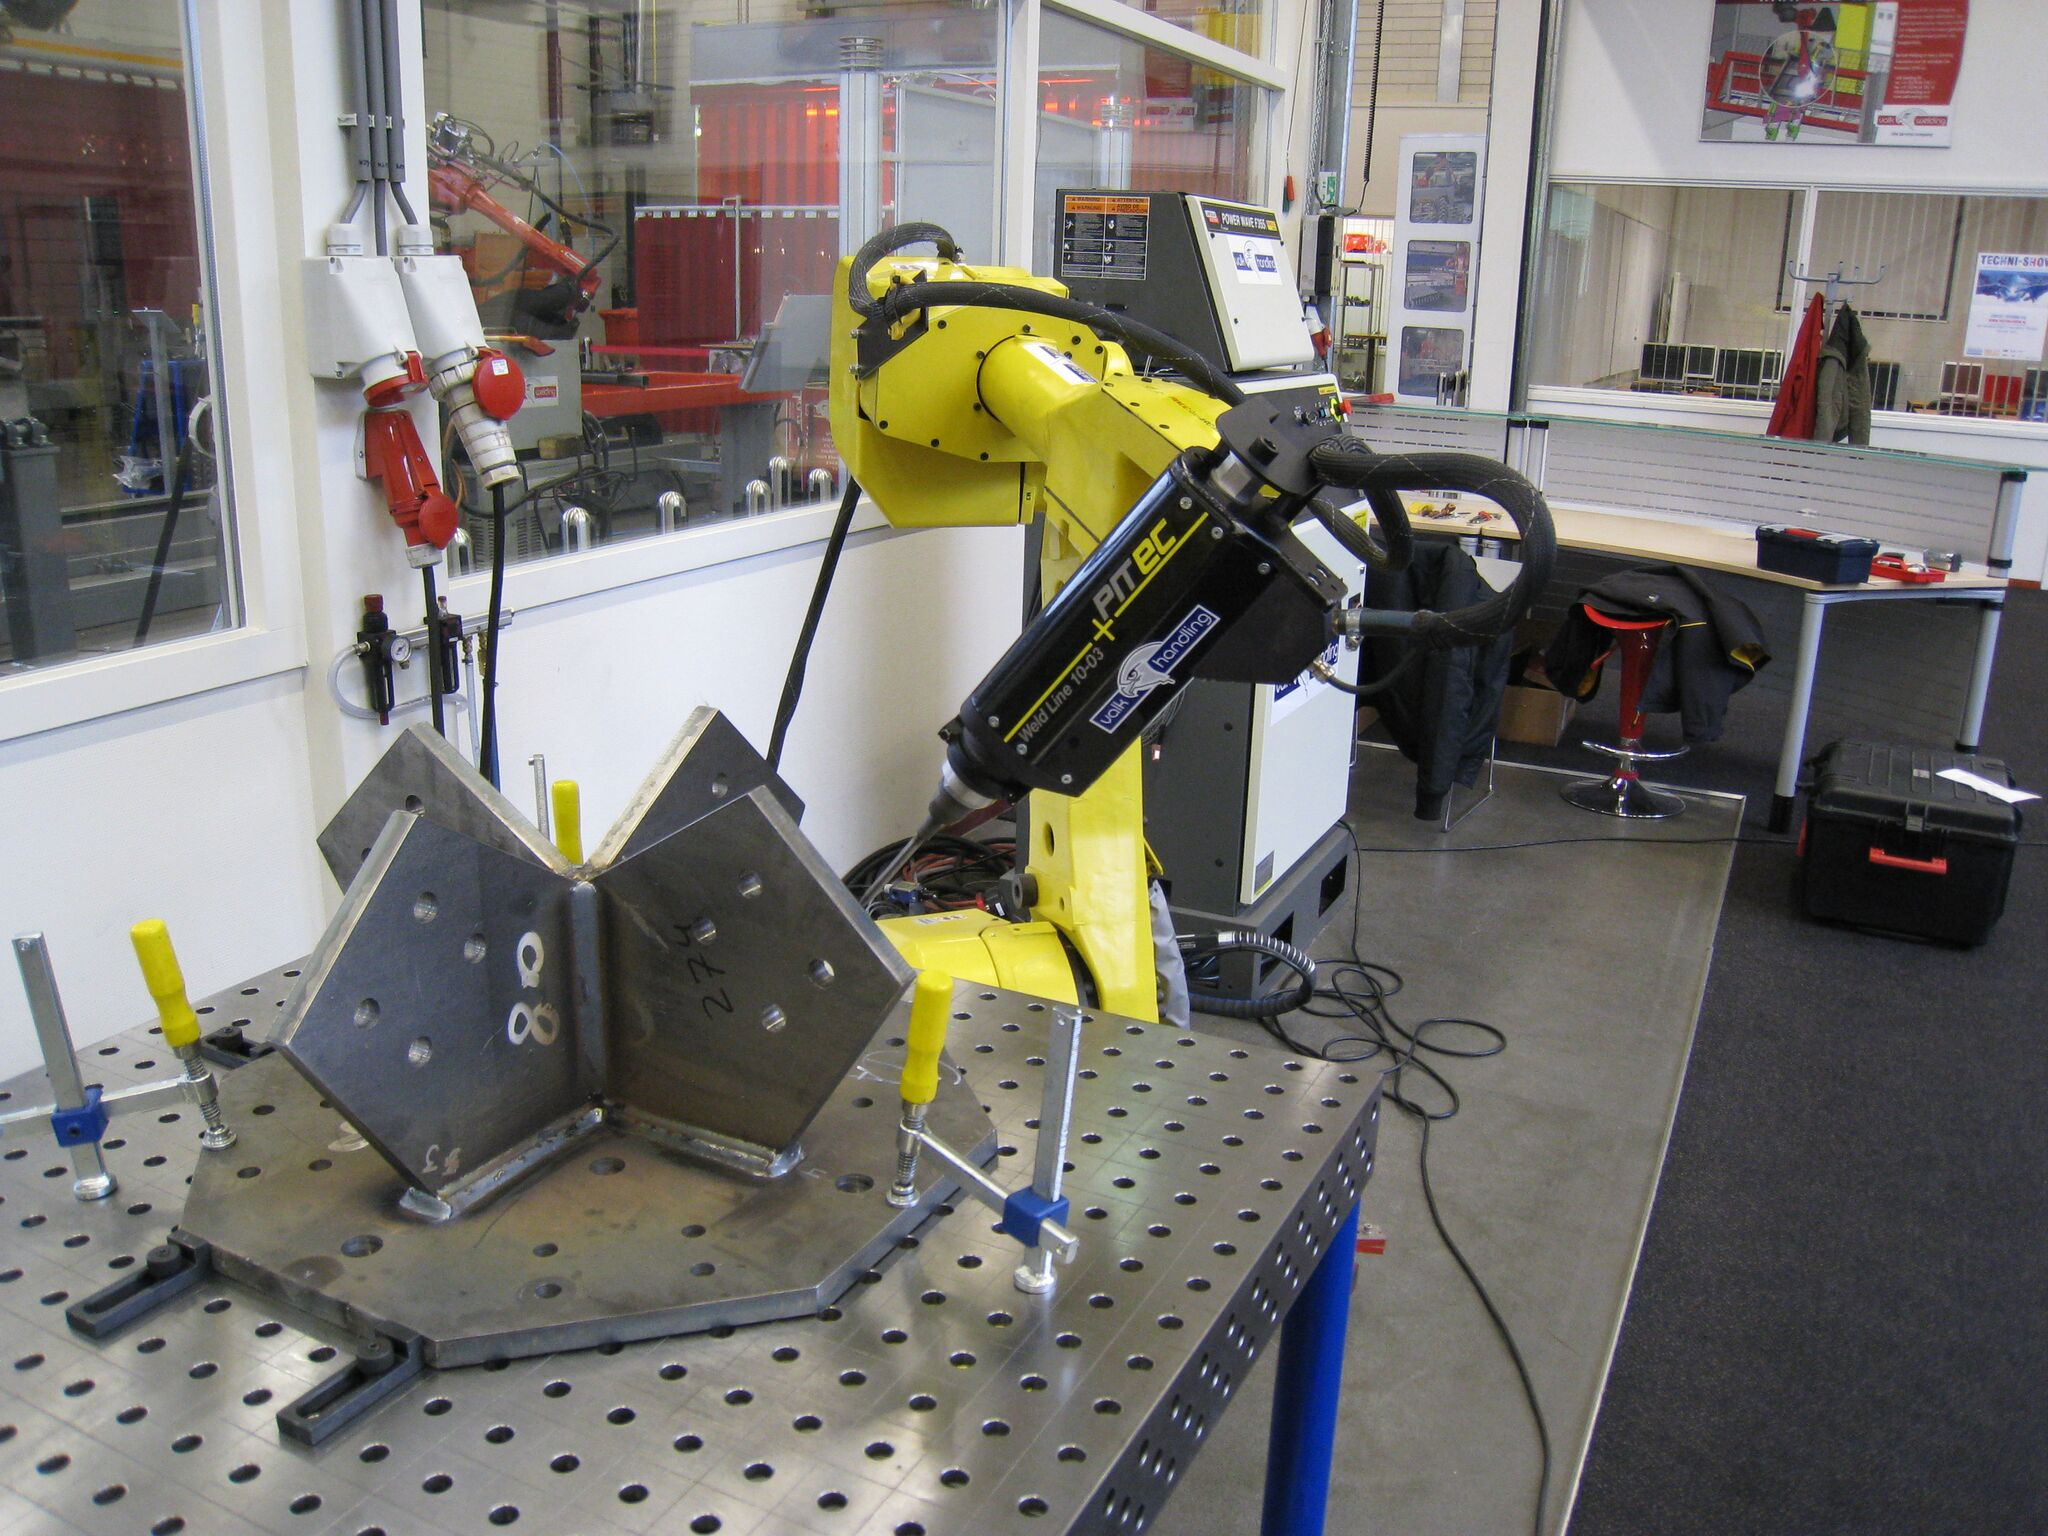 HFMI - PIT System Weld Line 10 - SPS - Application at a robot station